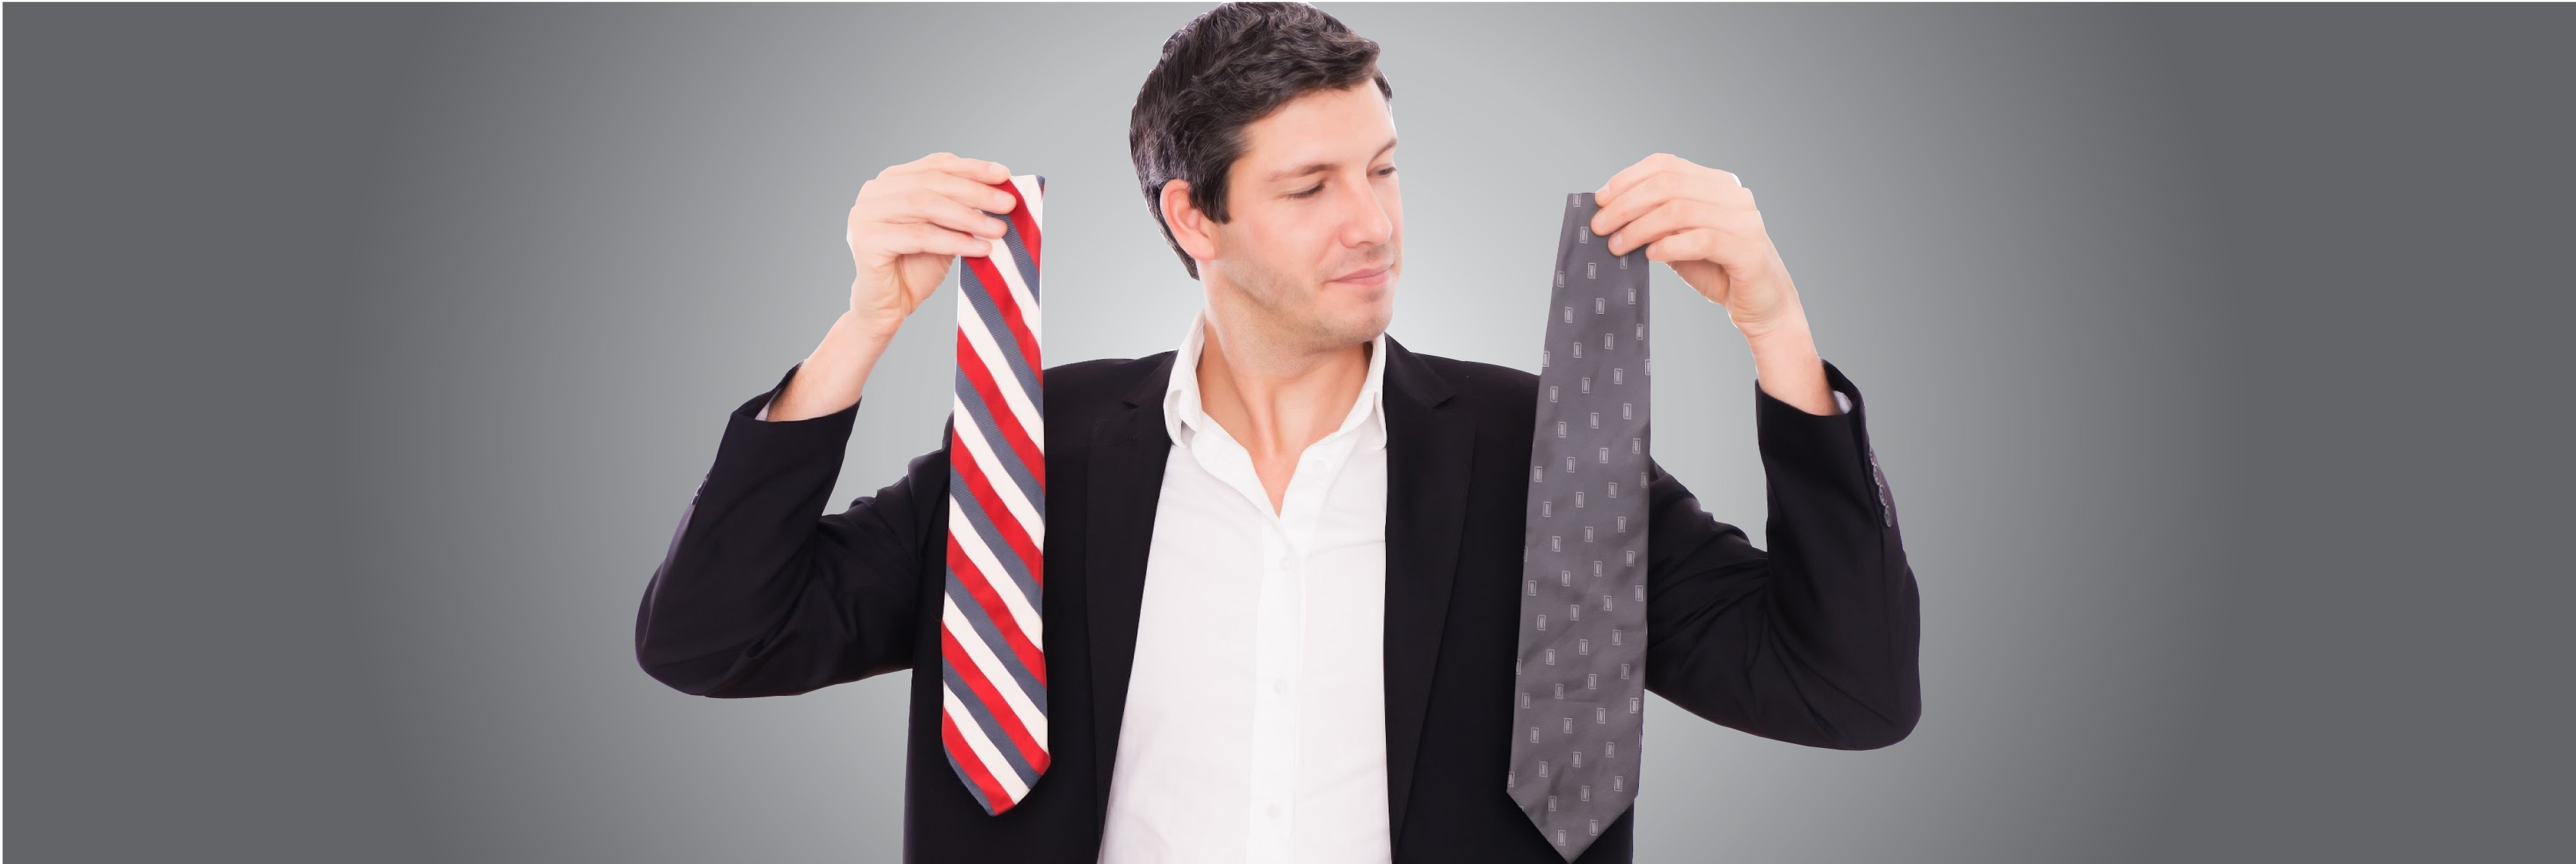 Does This Tie Make Me Look Hired?